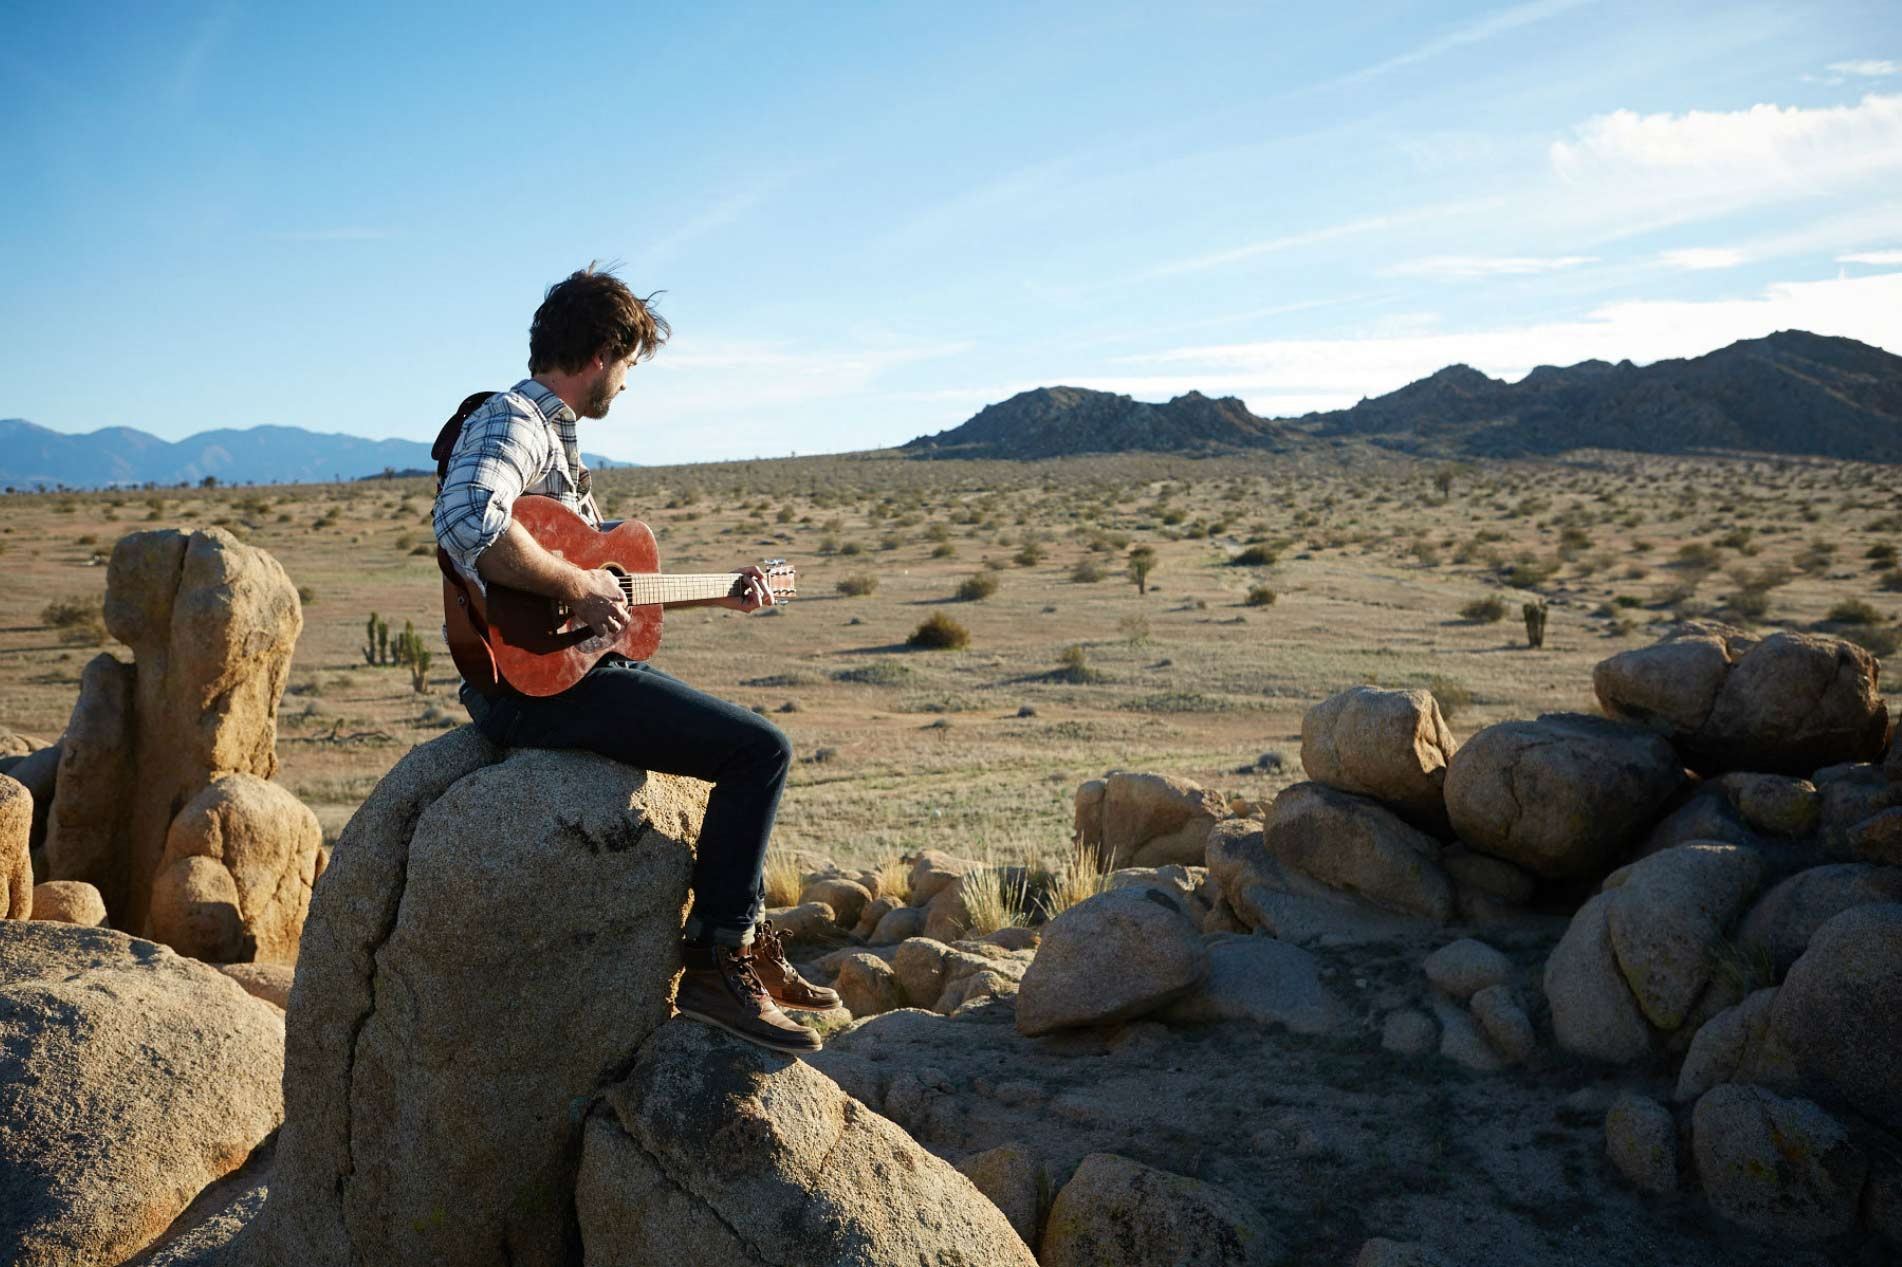 desert_Lifestyle_Advertising_Photographer_Chicago_Los_Angeles_Man_Hipster_Millenial_Playing_Guitar_Desert_Landscape_Mike_Henry_Photo